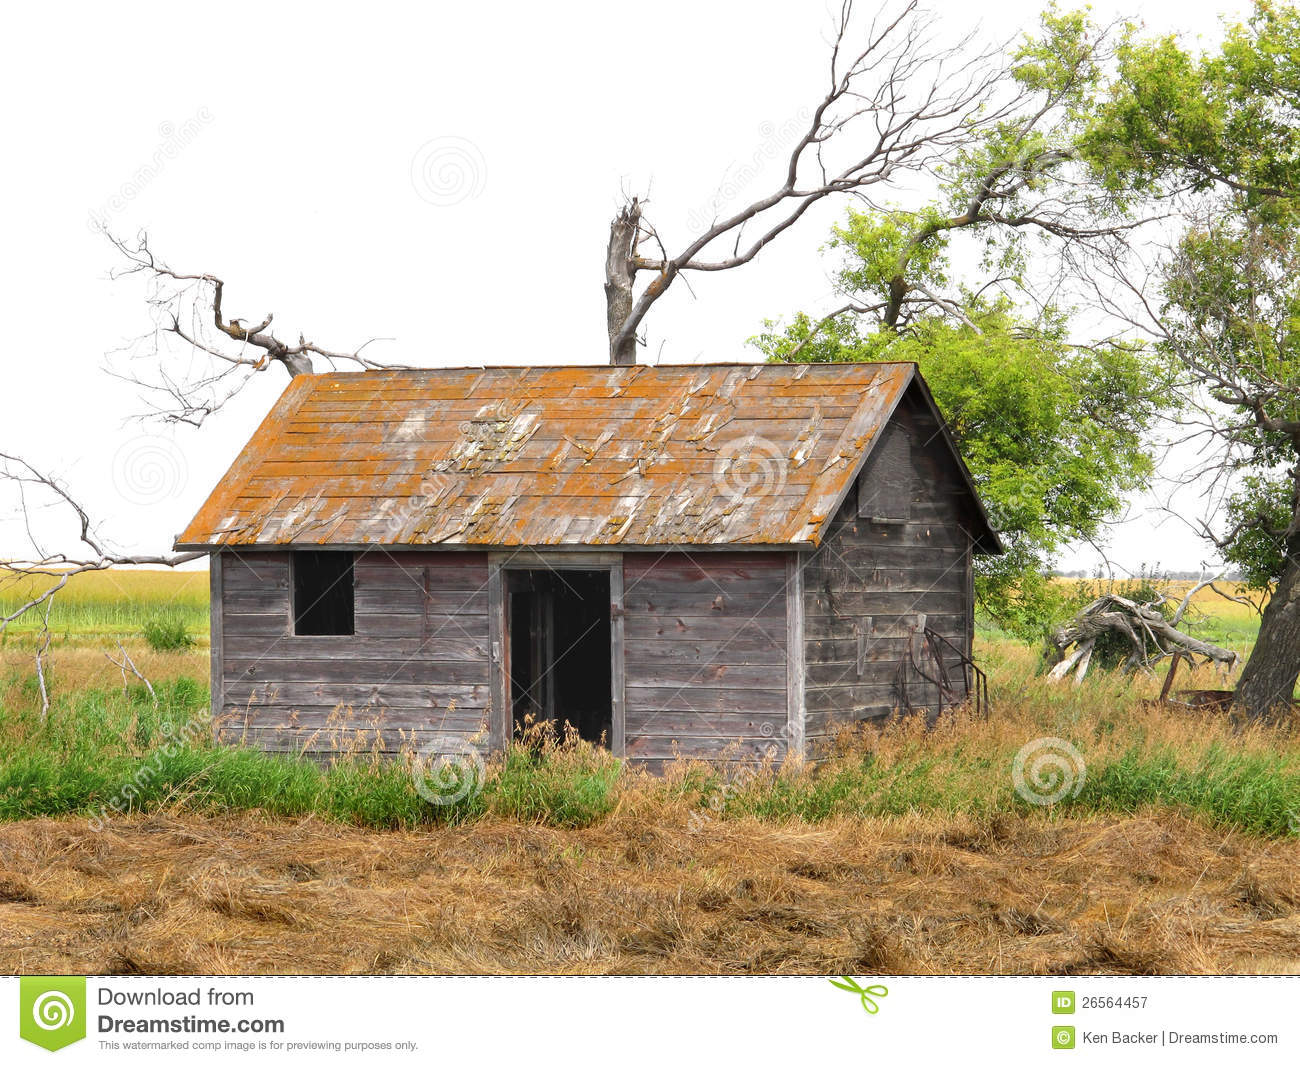 Abandoned shack in a prairie field